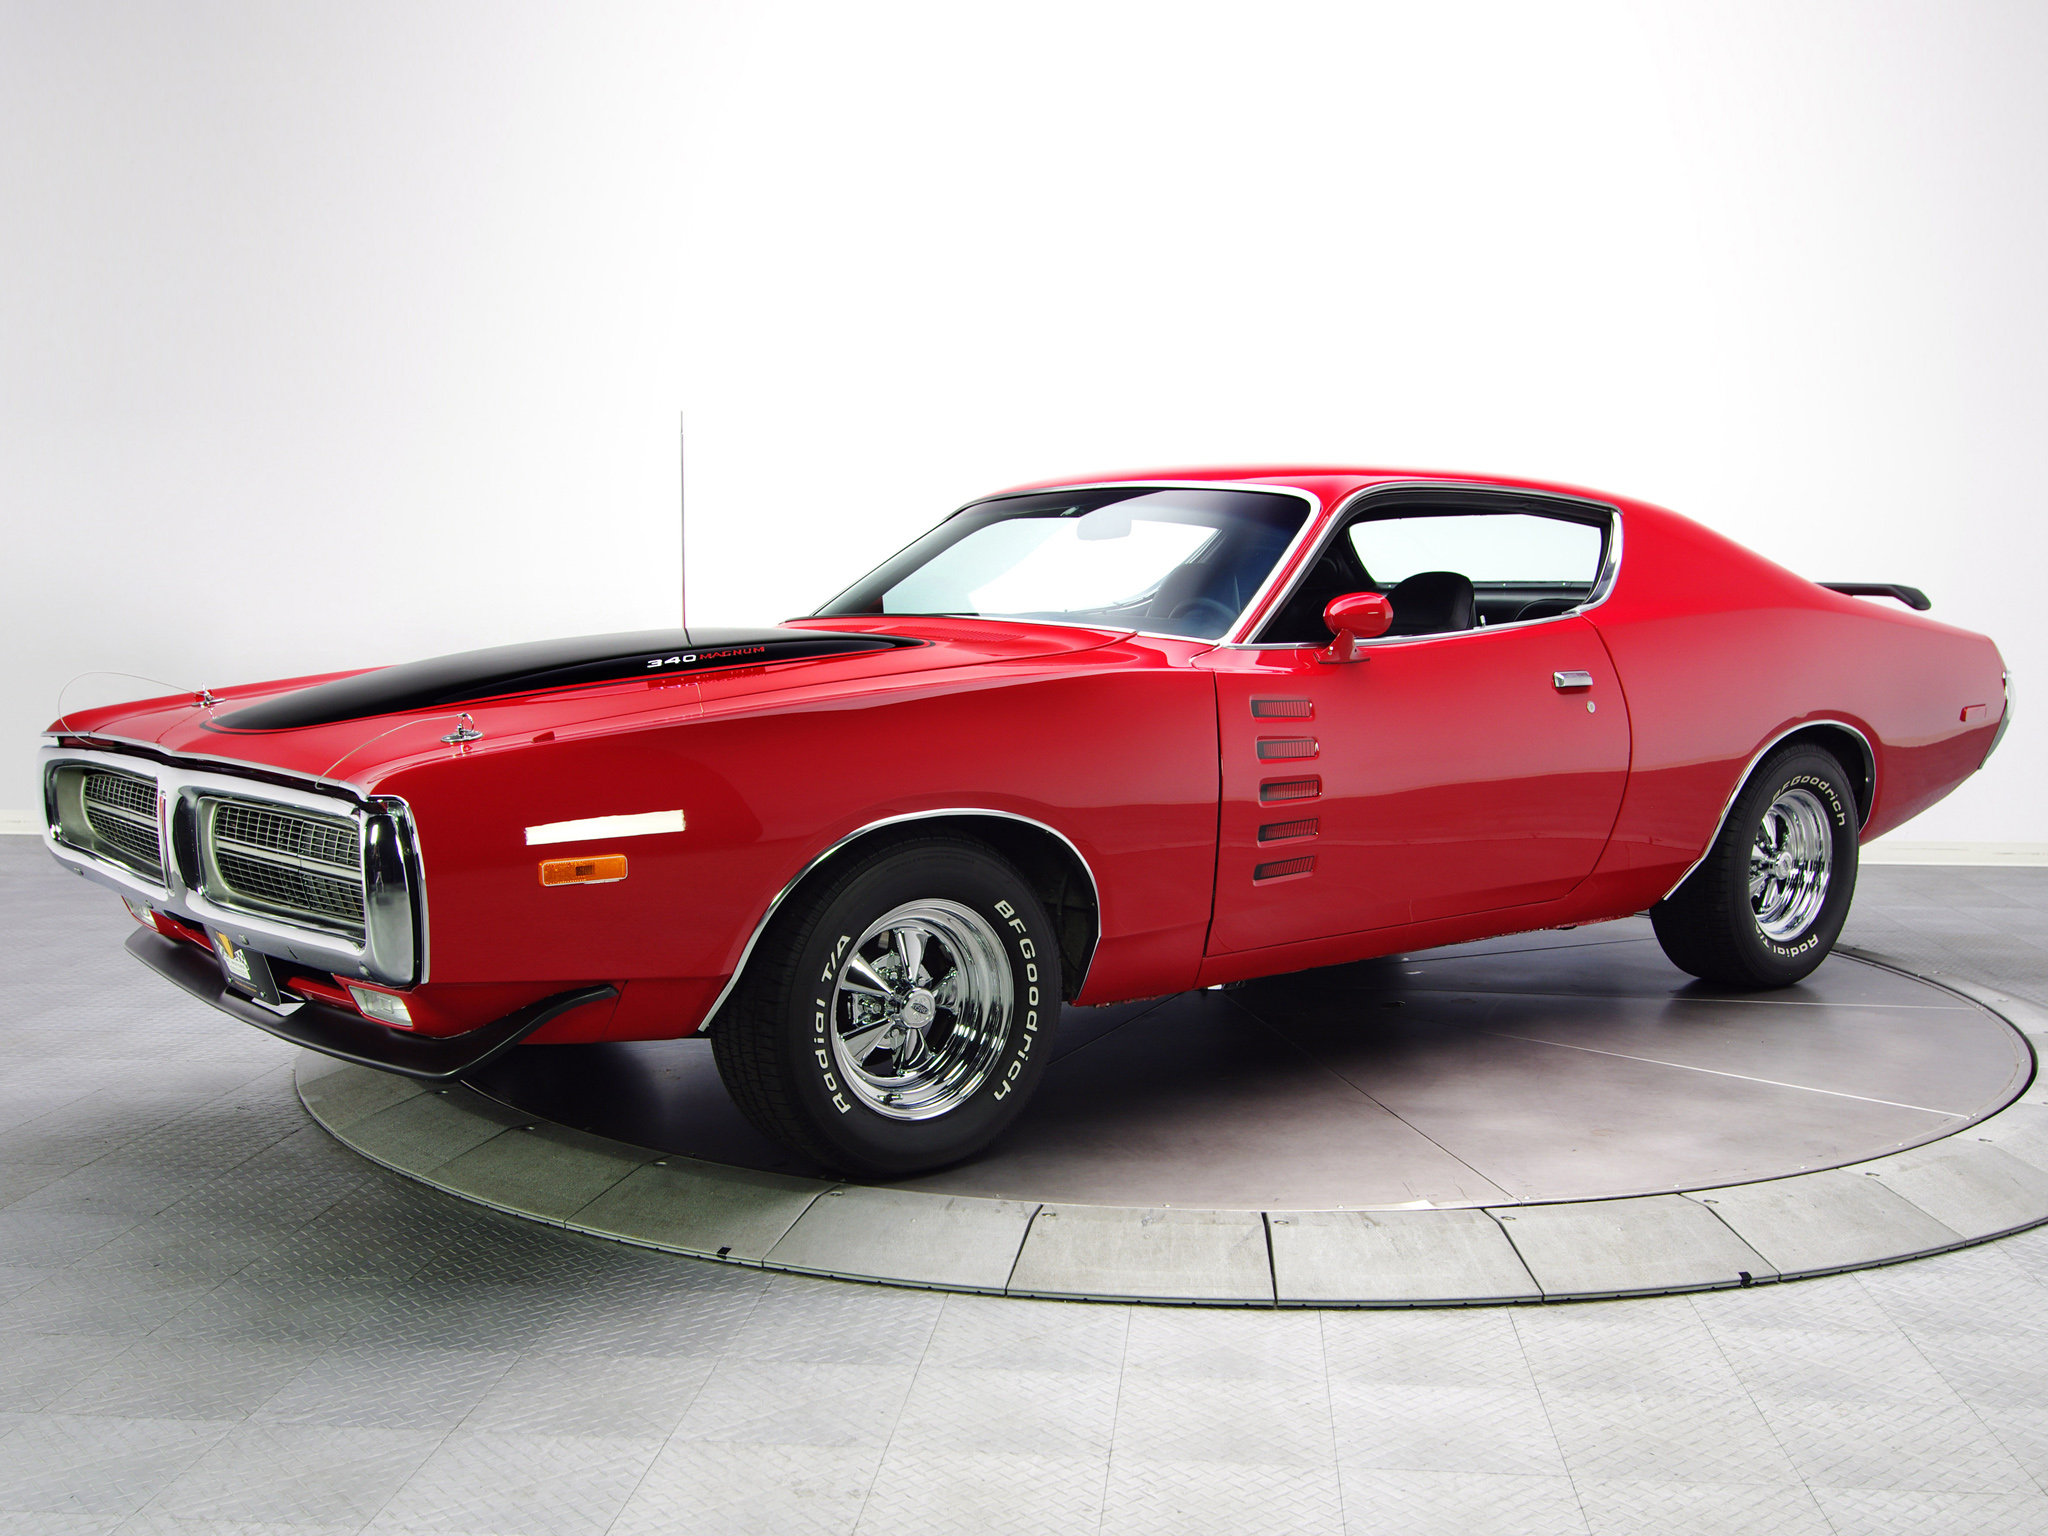 1972 Dodge Charger Rallye 340 Magnum Muscle Classic Hot